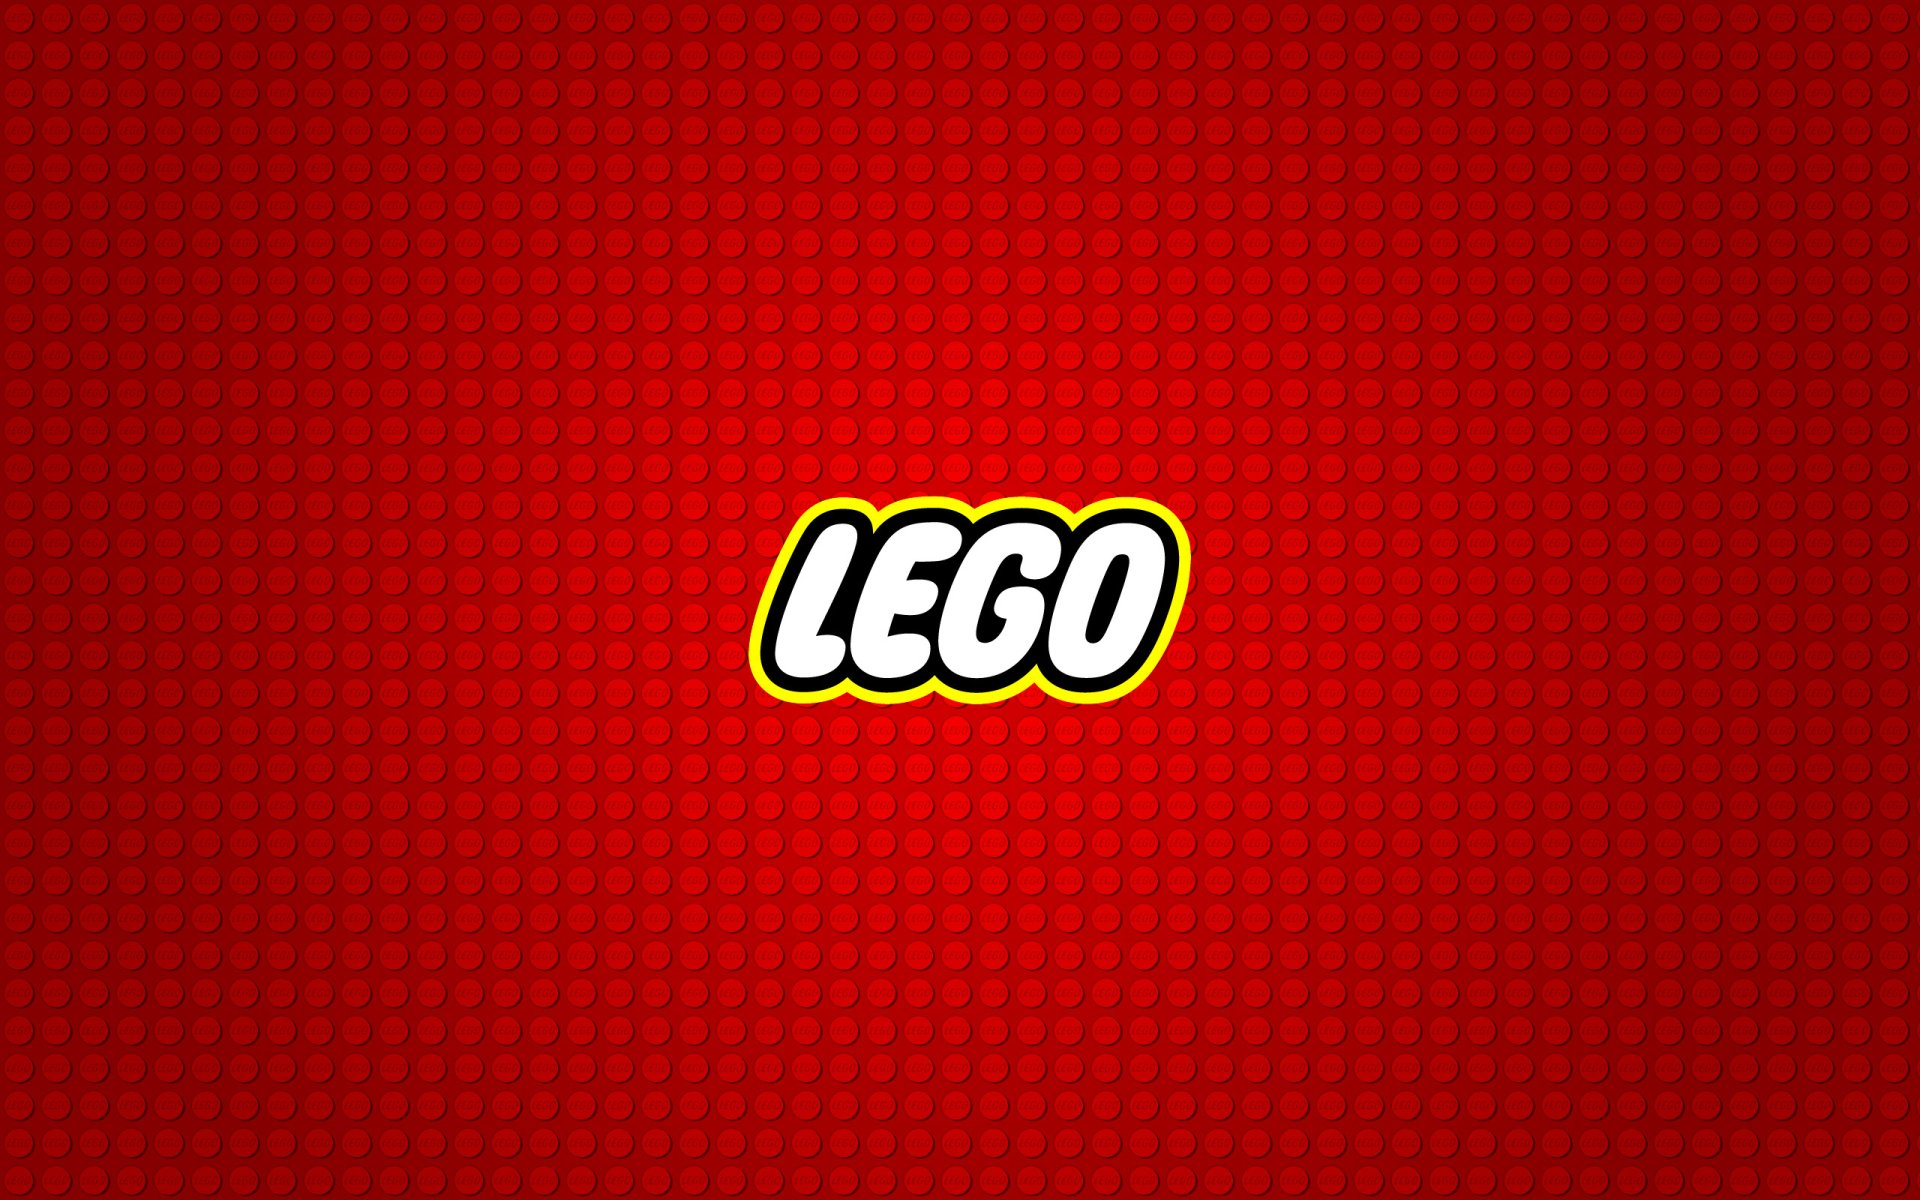 Products - Lego  Wallpaper